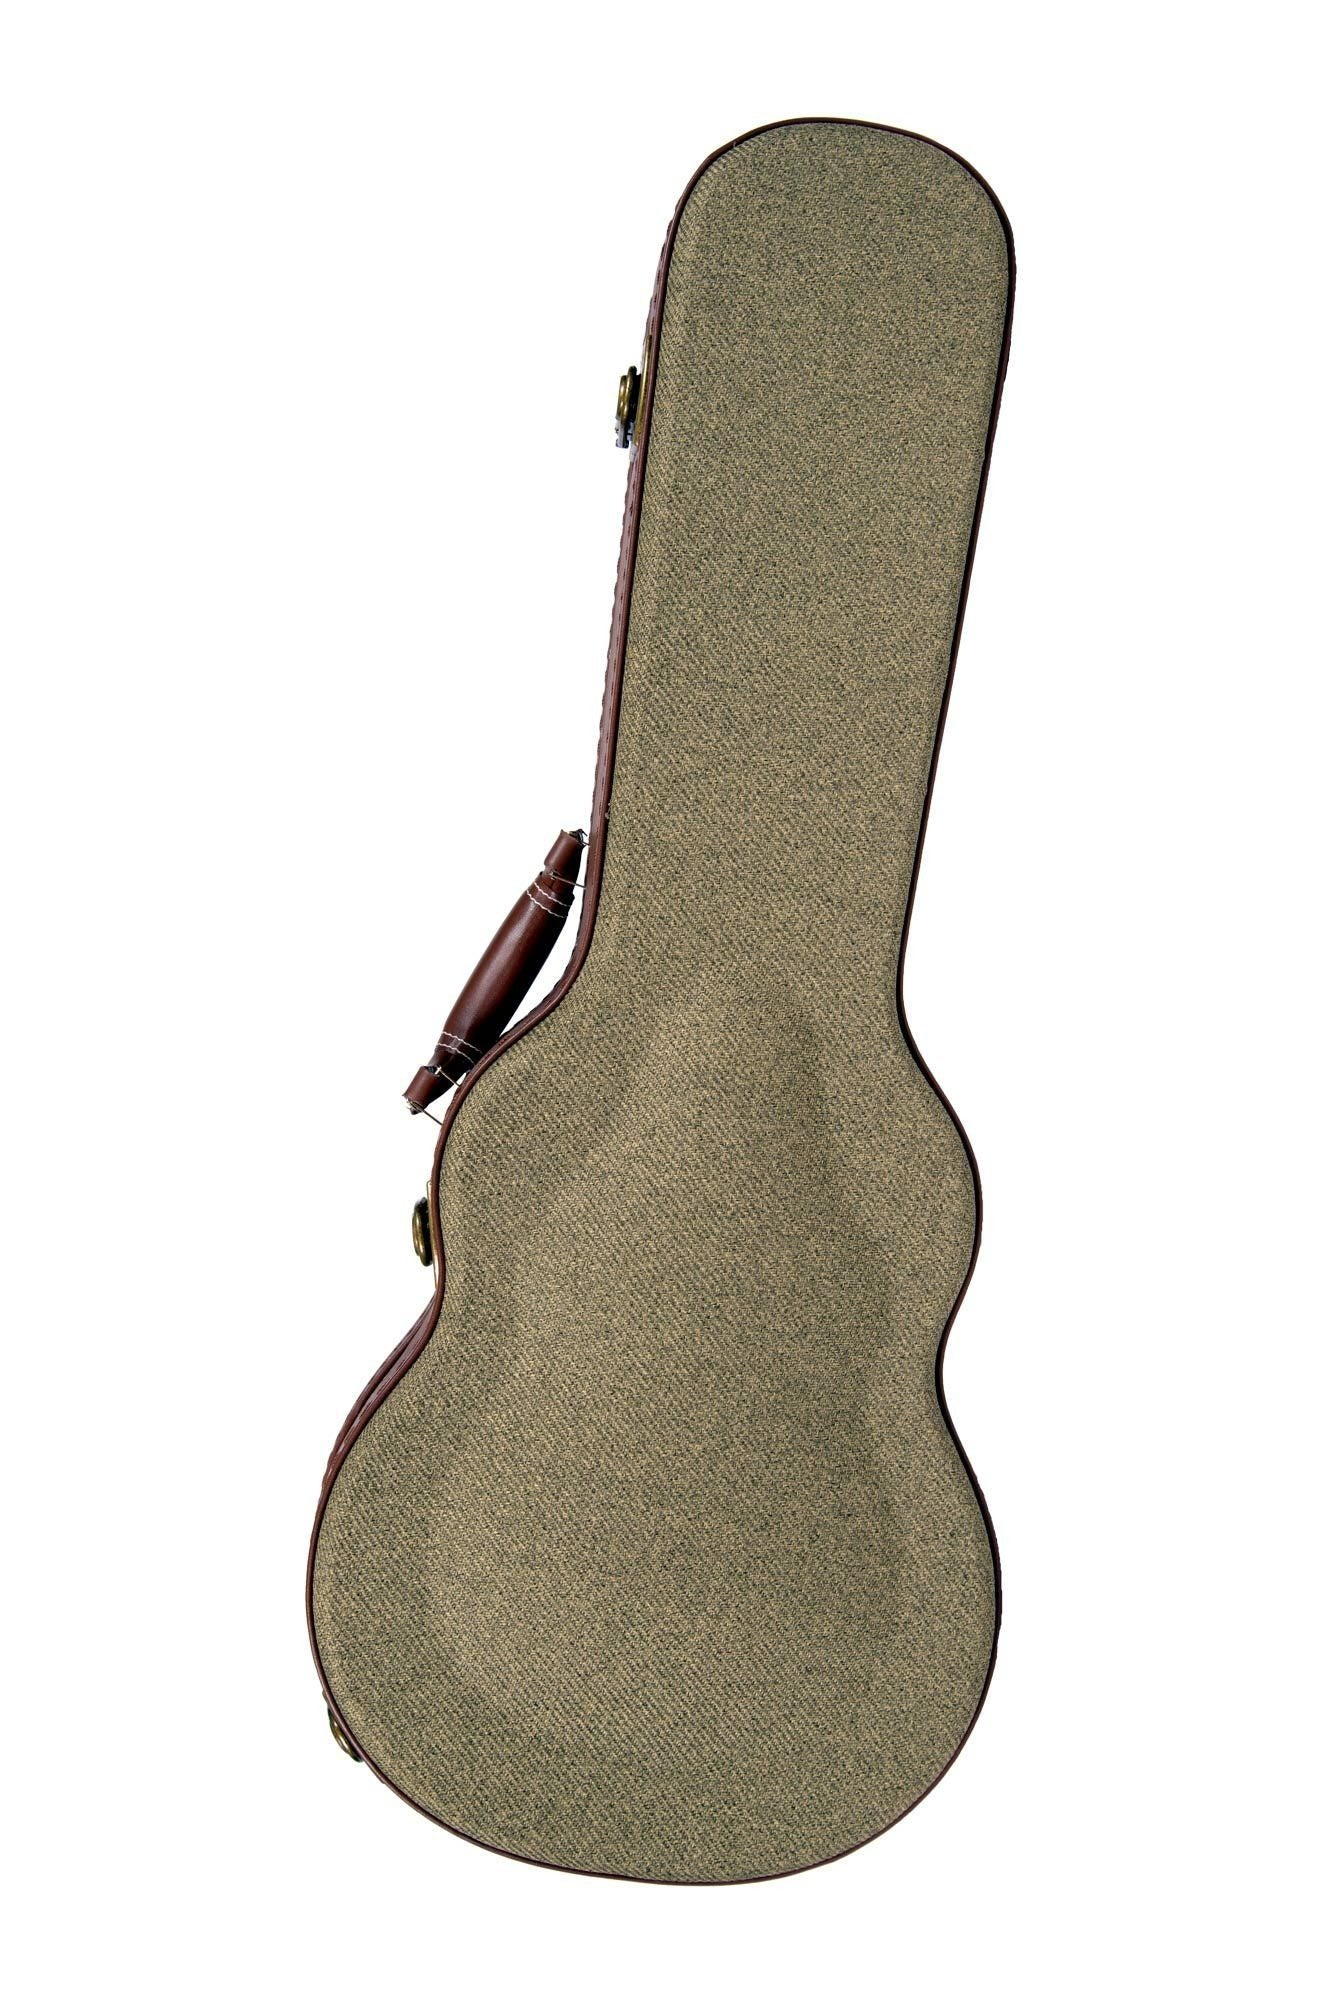 Olive Tweed Archtop Case